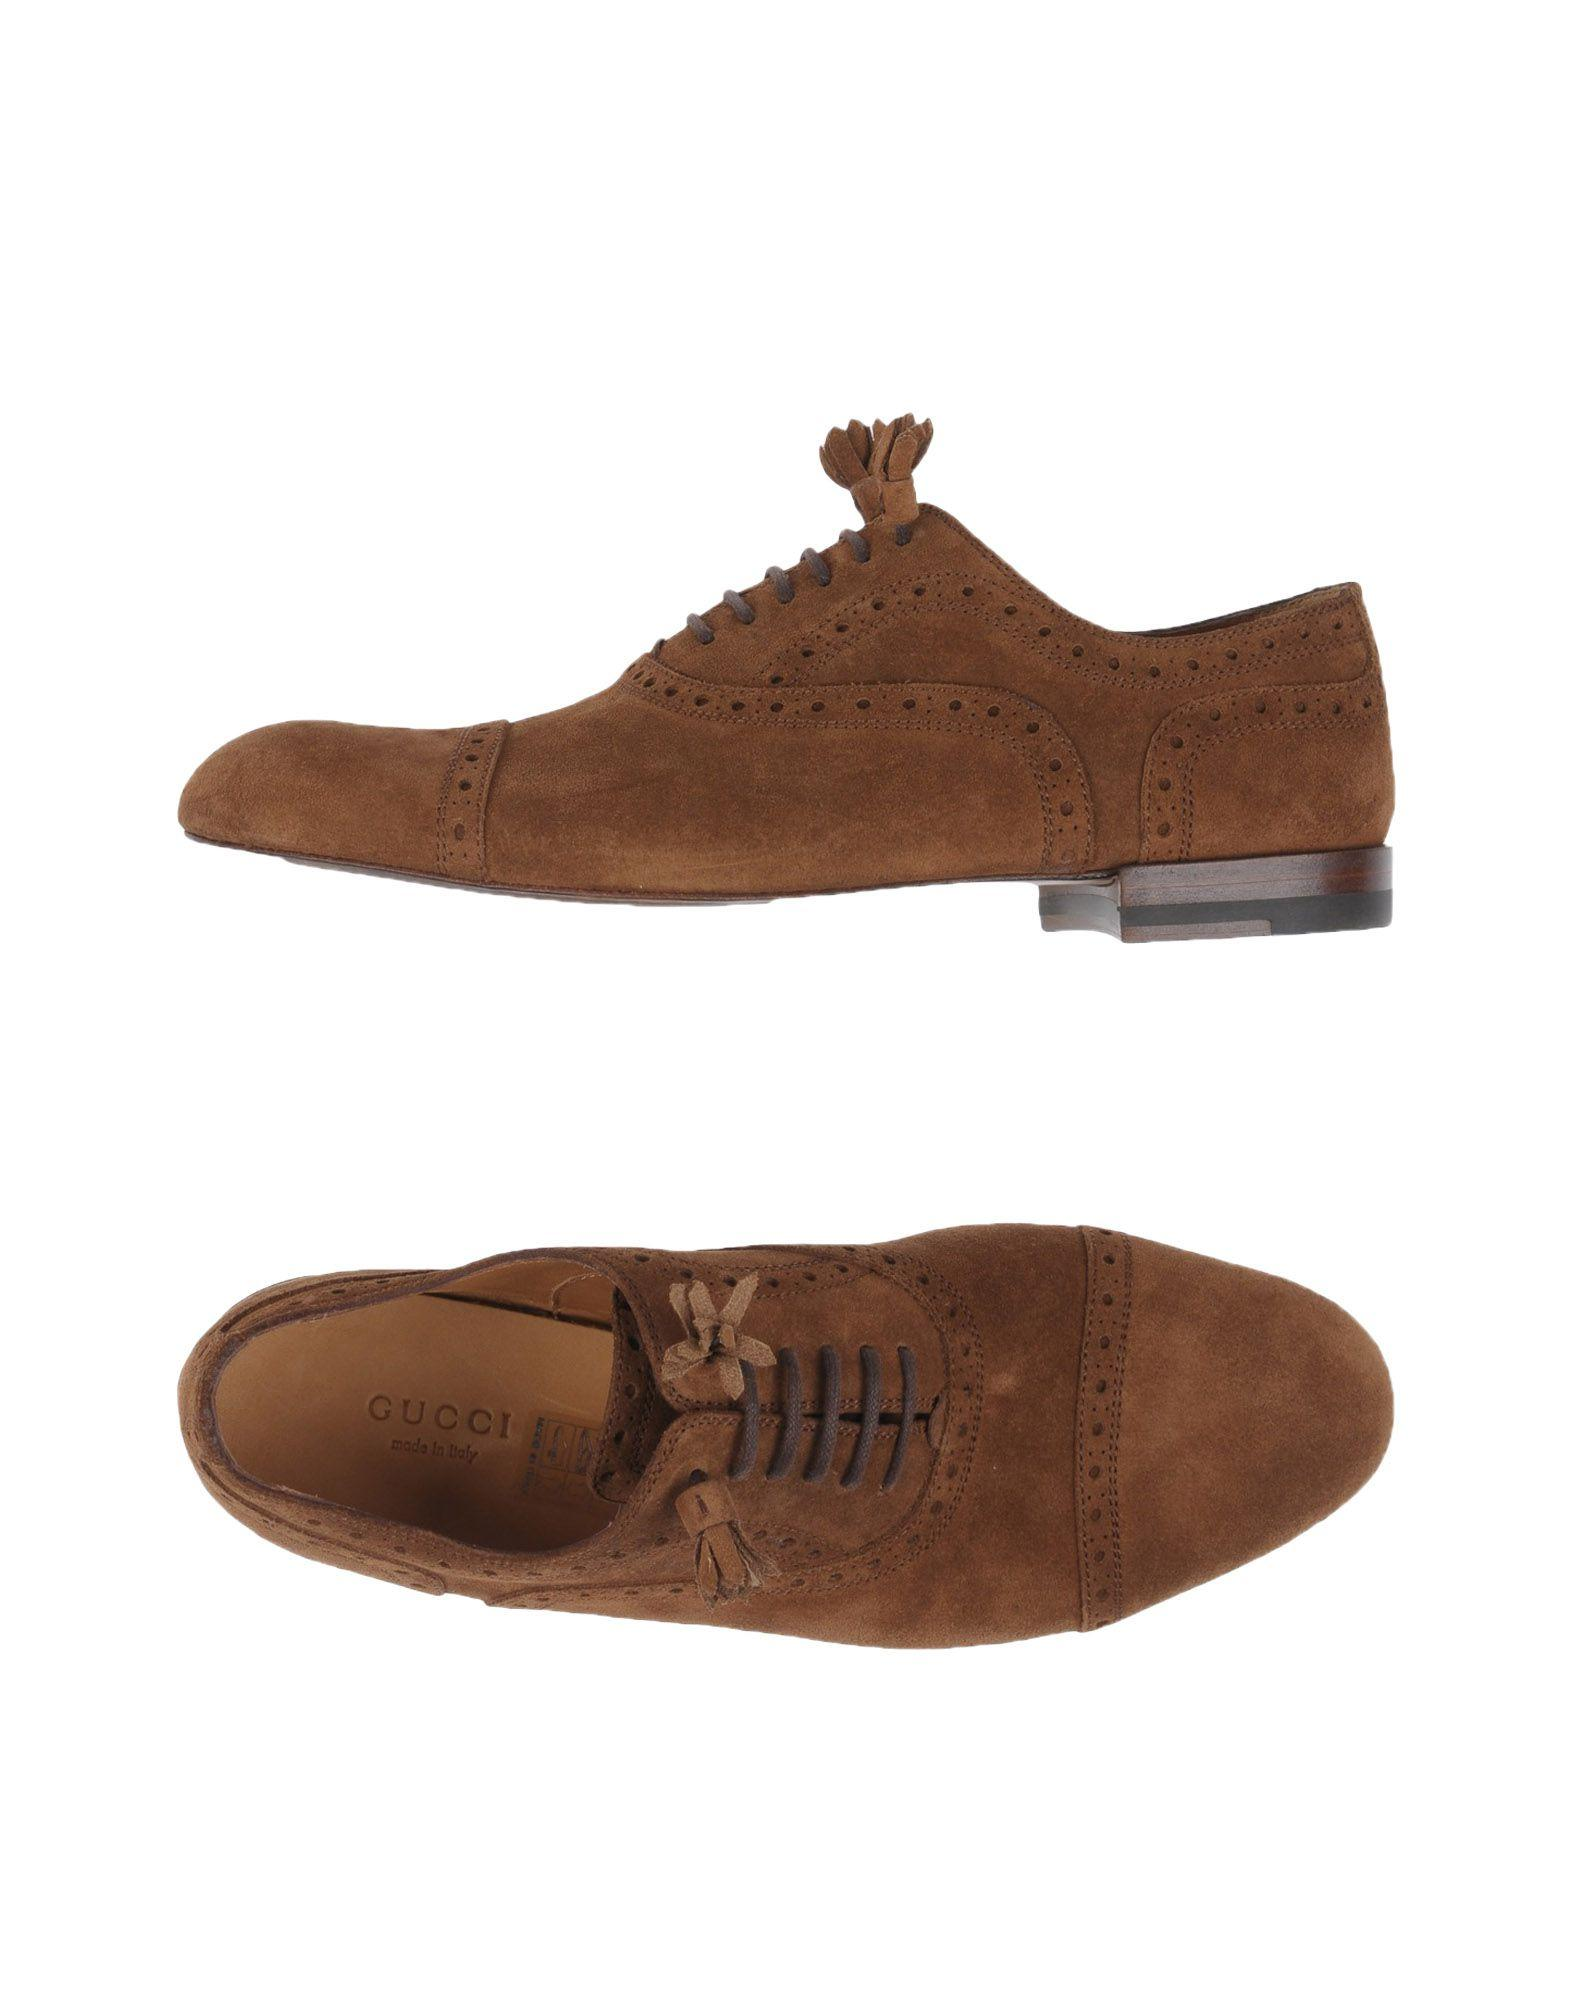 1a830ead13a Lyst - Gucci Lace-up Shoe in Brown for Men